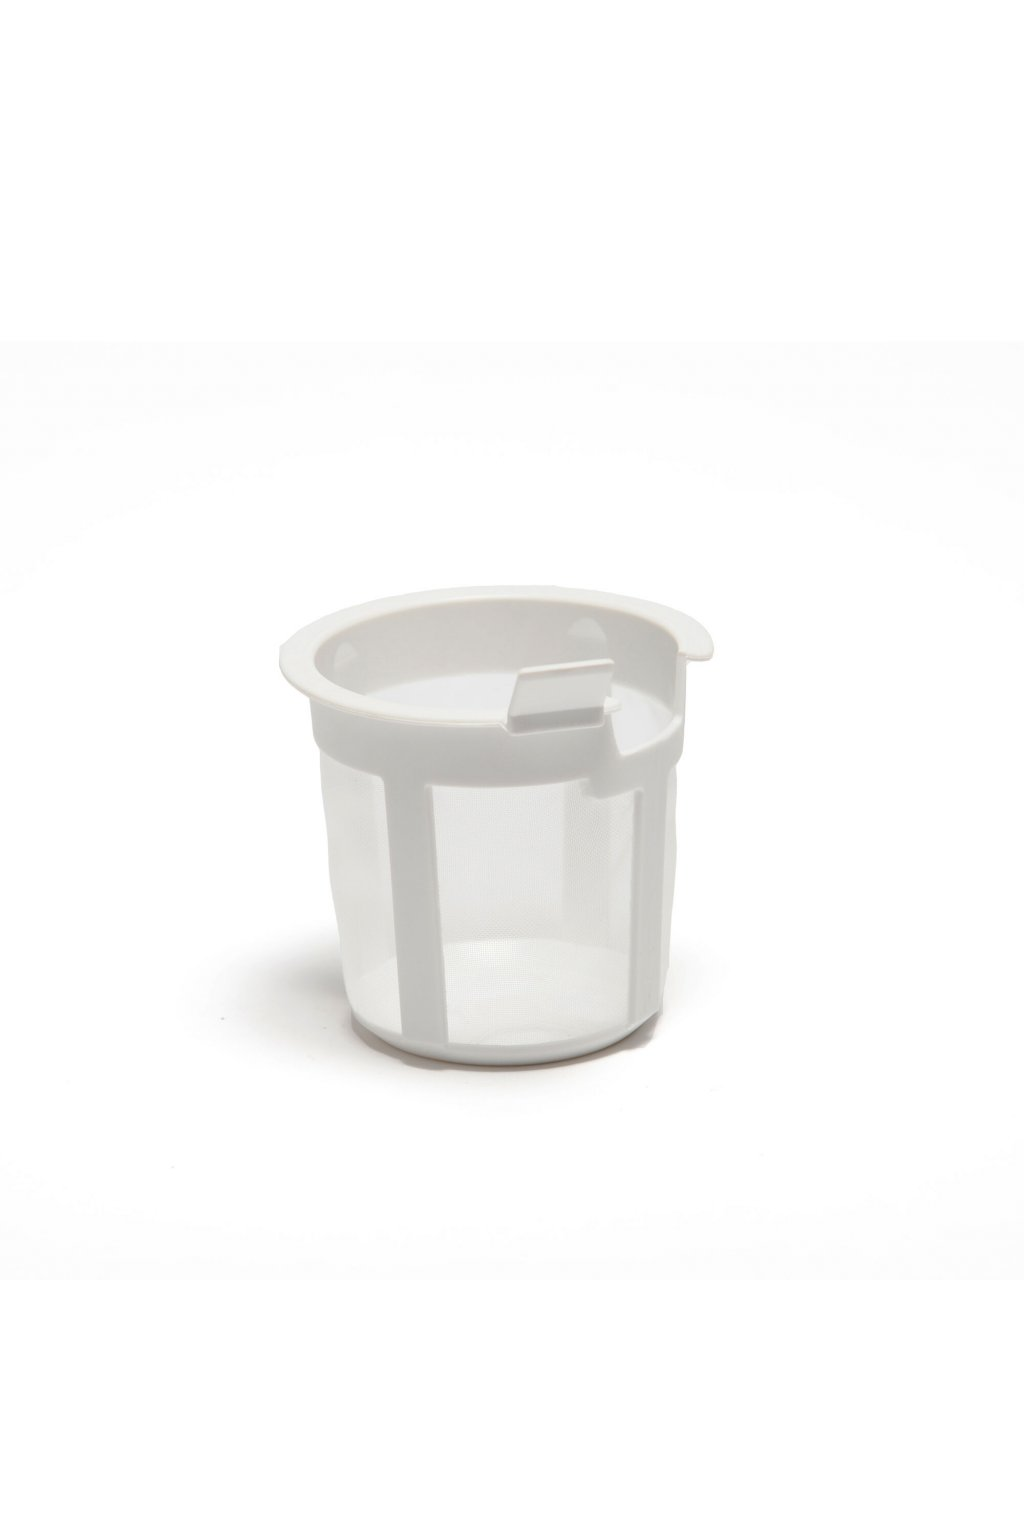 268102 CHATSFORD 2CUP WHITE FILTER 1